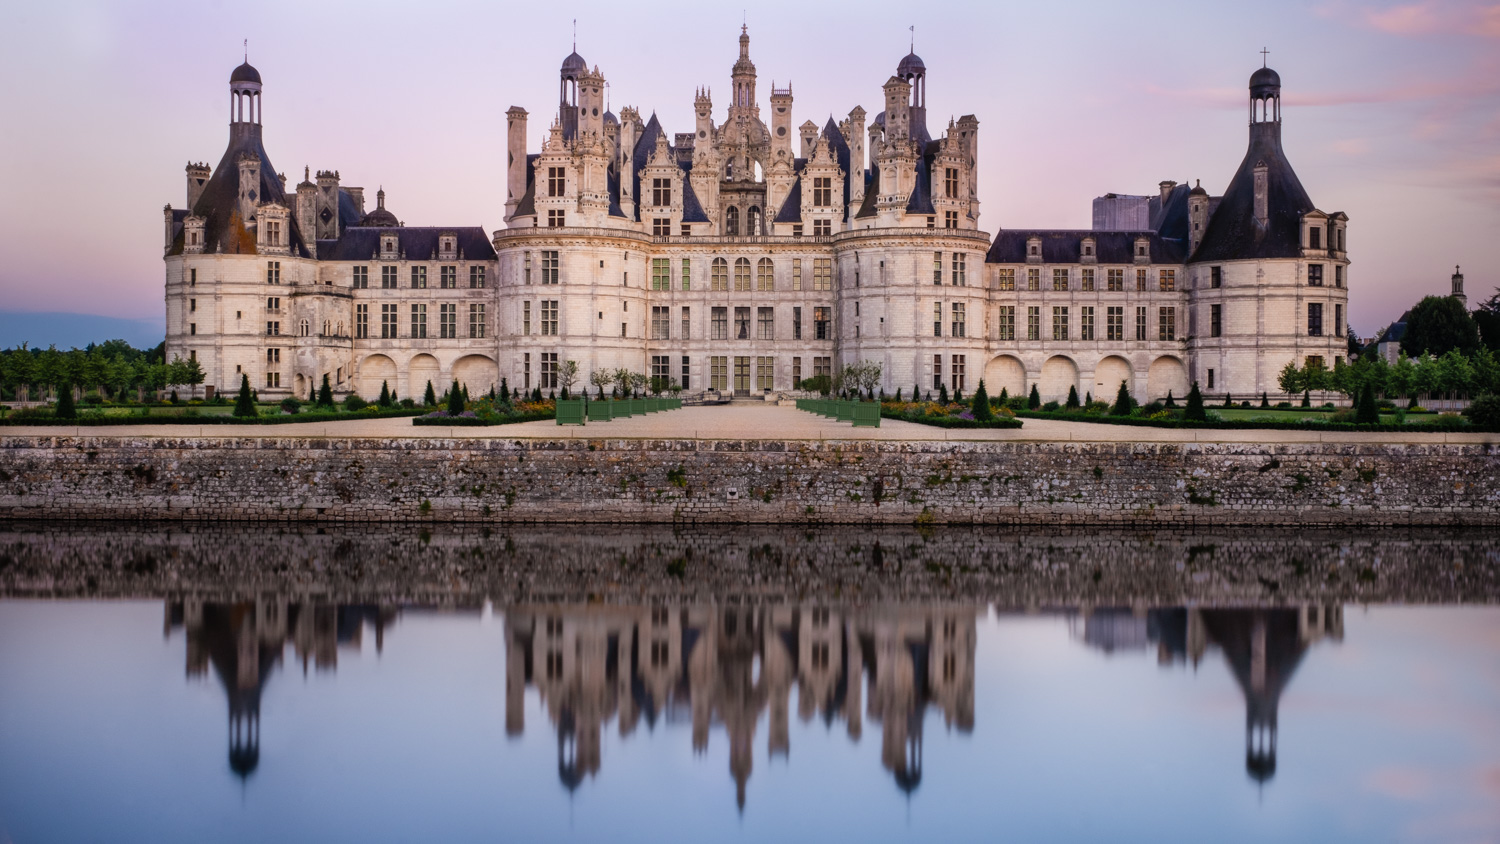 "Château de Chambord at sunset, Loire Valley. Travel photography and guide by © Natasha Lequepeys for ""And Then I Met Yoko"". #loirevalley #france #travelguide #photoblog #travelblog #travelphotography #landscapephotography #architecturephotography #travelitinerary #fujifilm #valdeloire #loire #chambord #chenonceau #cheverny #chaumont #chateau #castles #discoverfrance #honeymoondestination"